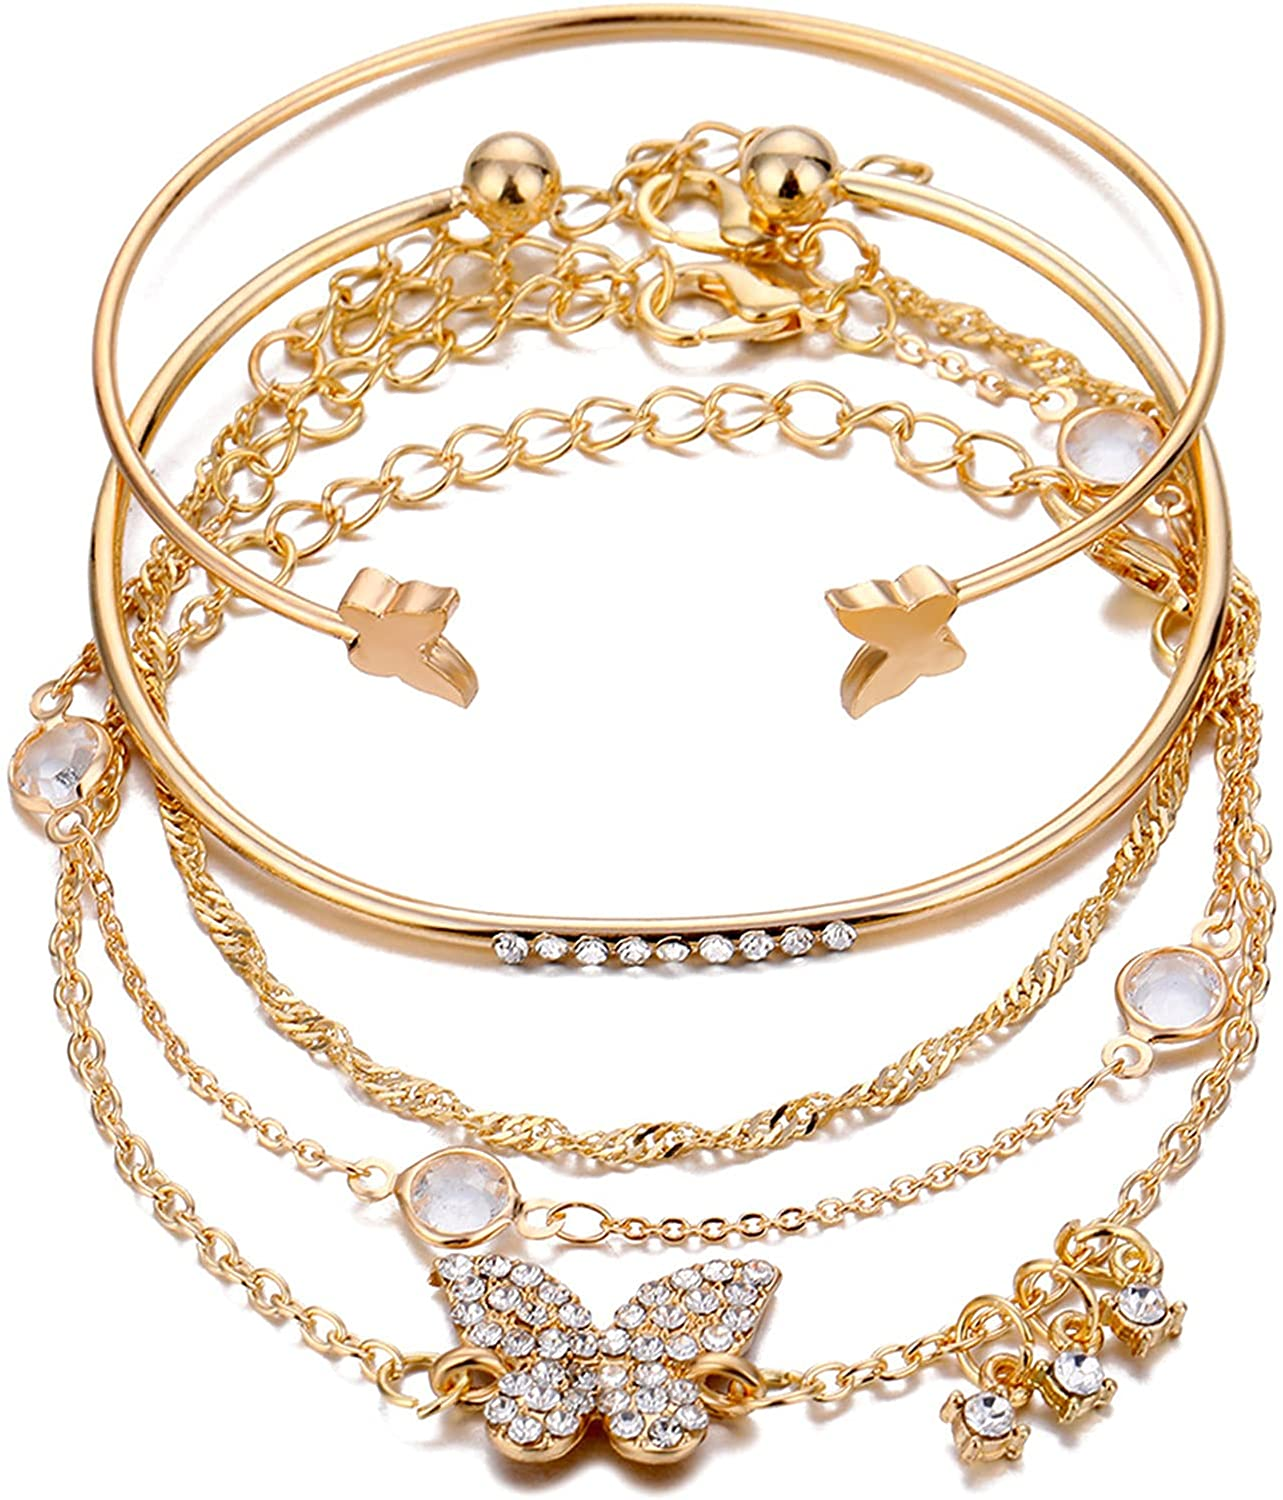 Layered Stacking Link Chain Butterfly Honeycomb Bracelet Bangle Set Bohemian Paperclip Rhinestone Bead for Women Girl Teen Teen 14K Gold Plated Animal Jewelry